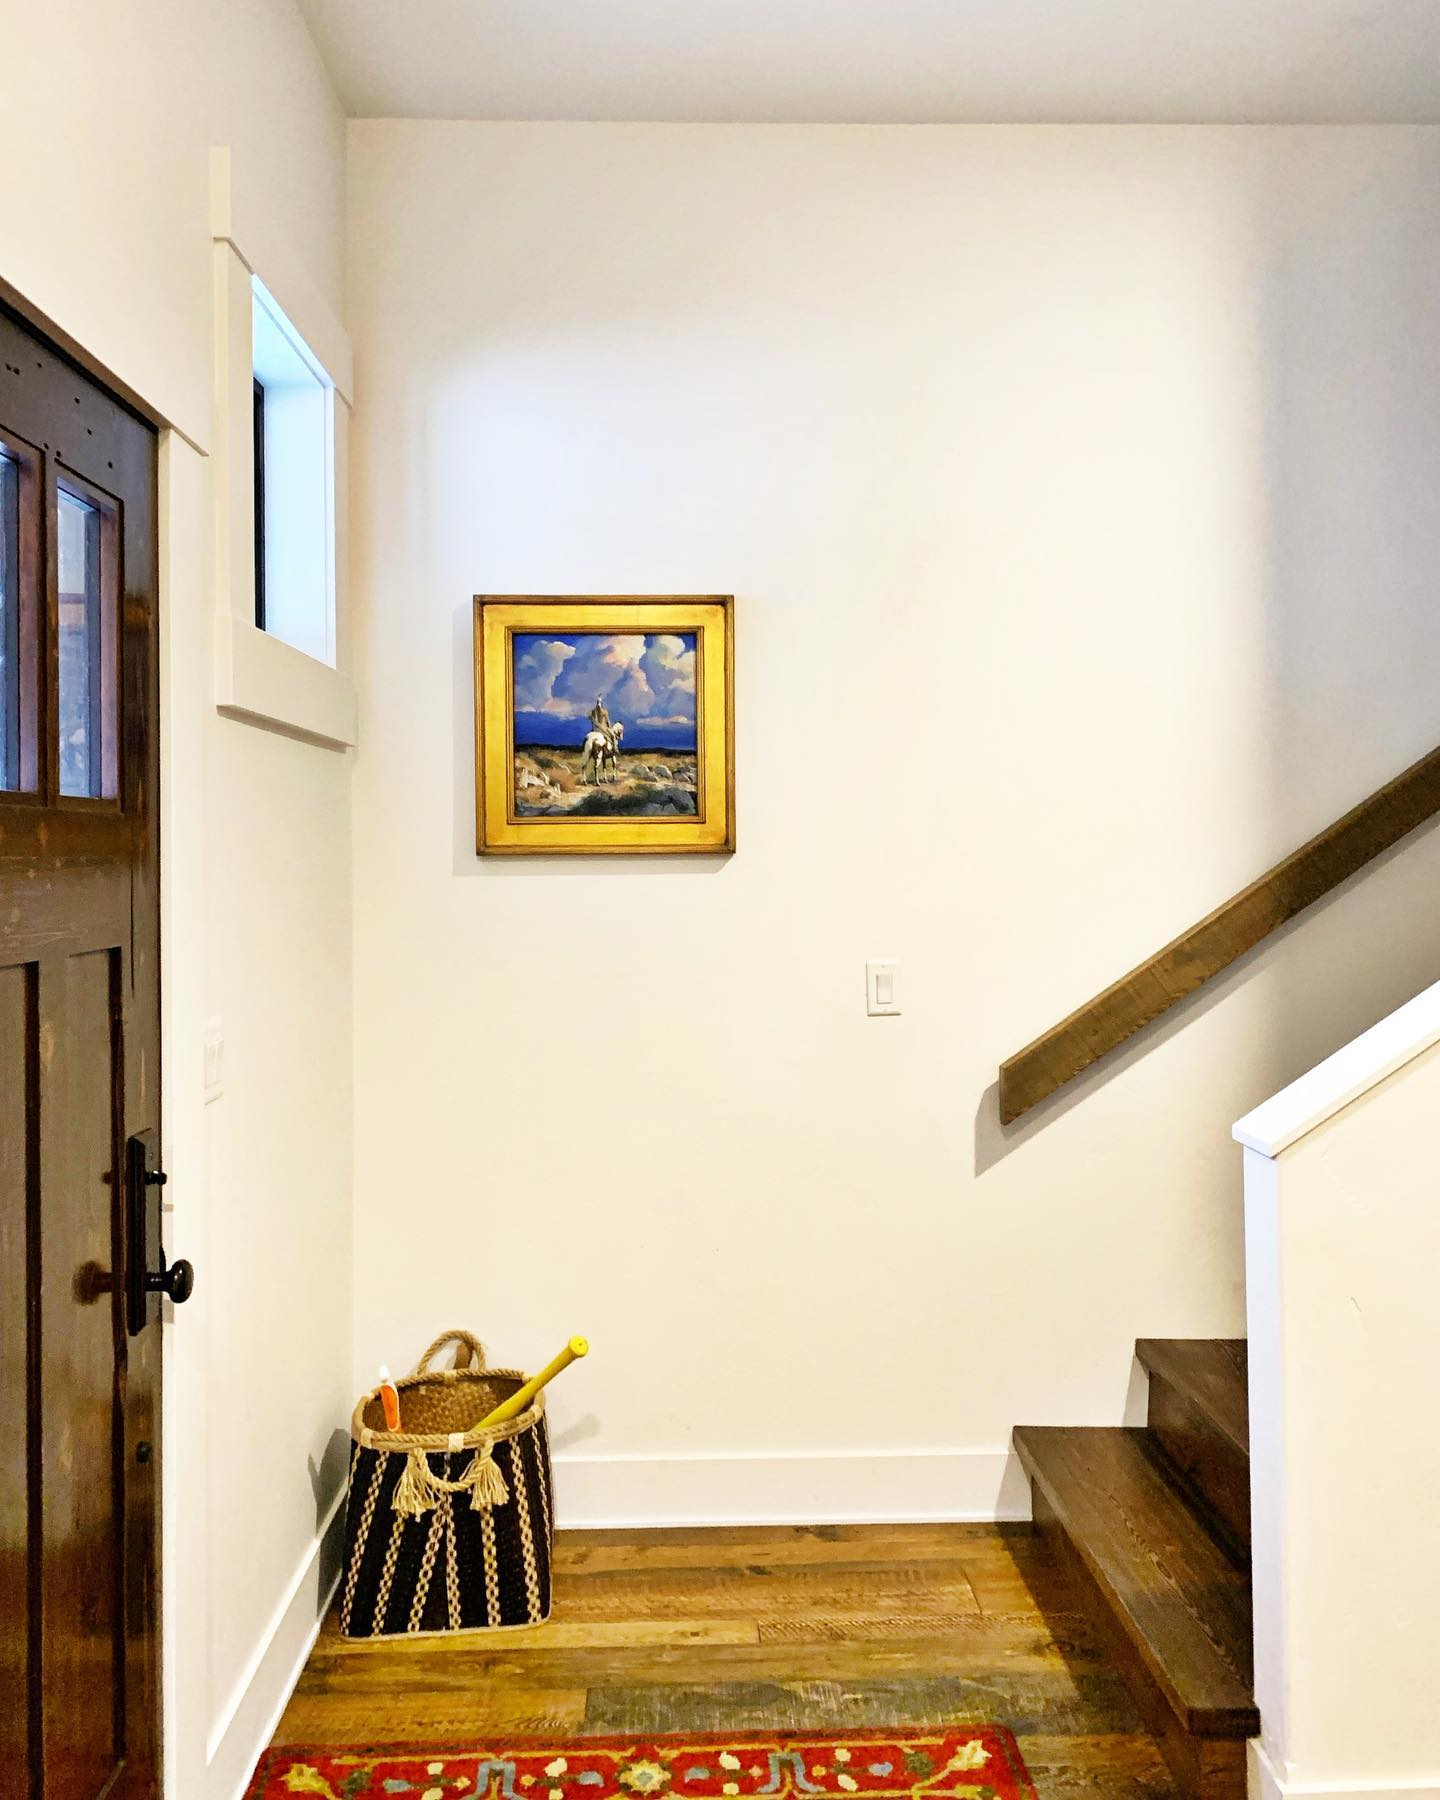 Few things make me as happy as well placed art  @frameref_whitefish whitefish custom home builder